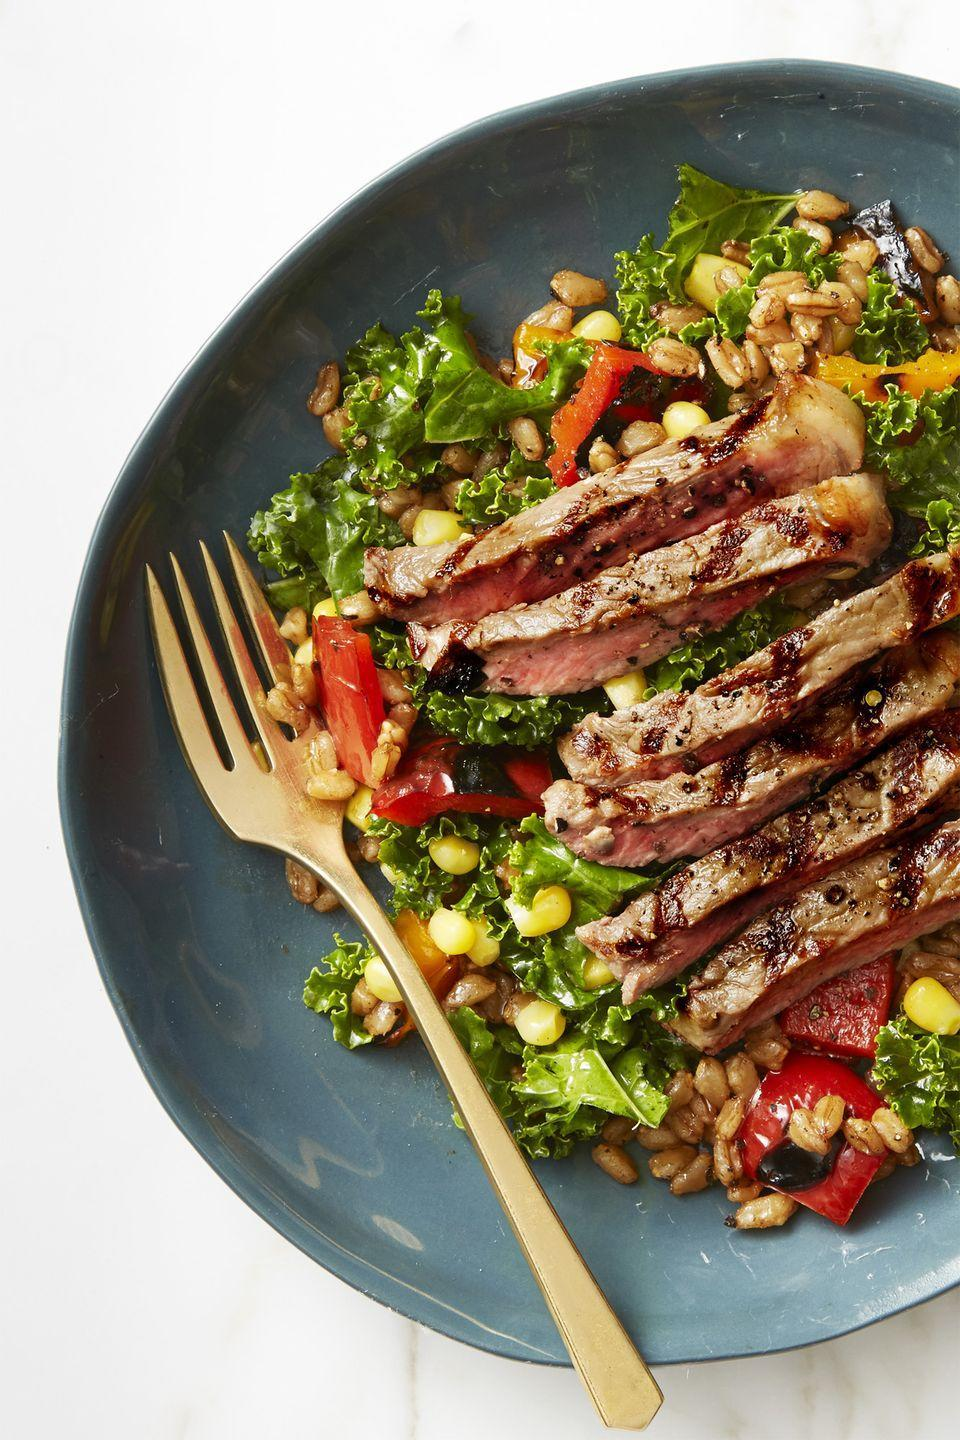 """<p>Thanks to a colorful veggie medley, this steak salad ticks off all the healthy boxes.</p><p><a href=""""https://www.goodhousekeeping.com/food-recipes/easy/a44226/summer-farro-salad-grilled-steak-recipe/"""" rel=""""nofollow noopener"""" target=""""_blank"""" data-ylk=""""slk:Get the recipe for Summer Farro Salad with Grilled Steak »"""" class=""""link rapid-noclick-resp""""><em>Get the recipe for Summer Farro Salad with Grilled Steak »</em></a></p>"""